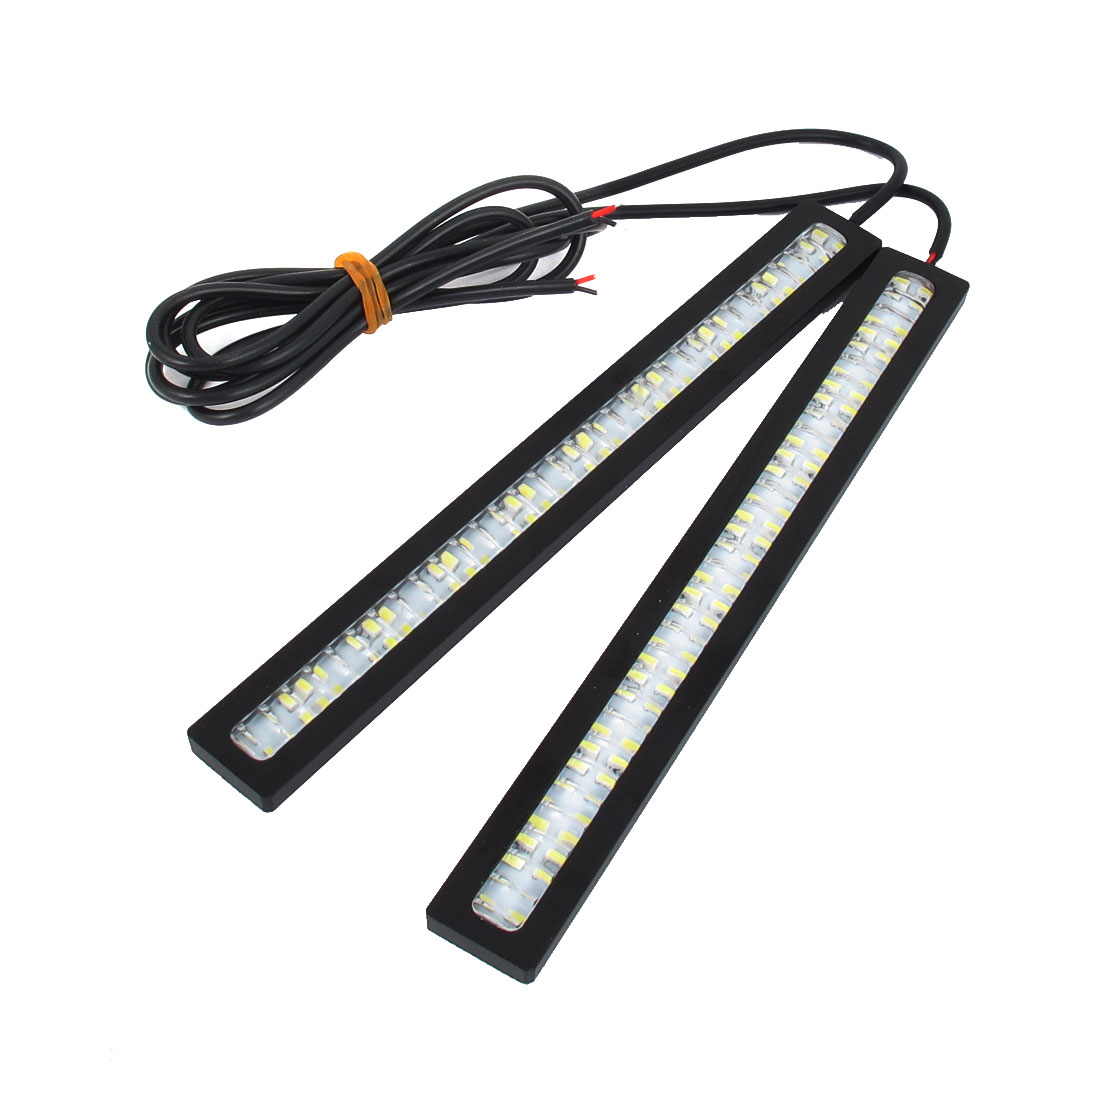 2 Pcs Car Auto 1206 SMD 84 White LED DRL Driving Daytime Running Light DC 12V